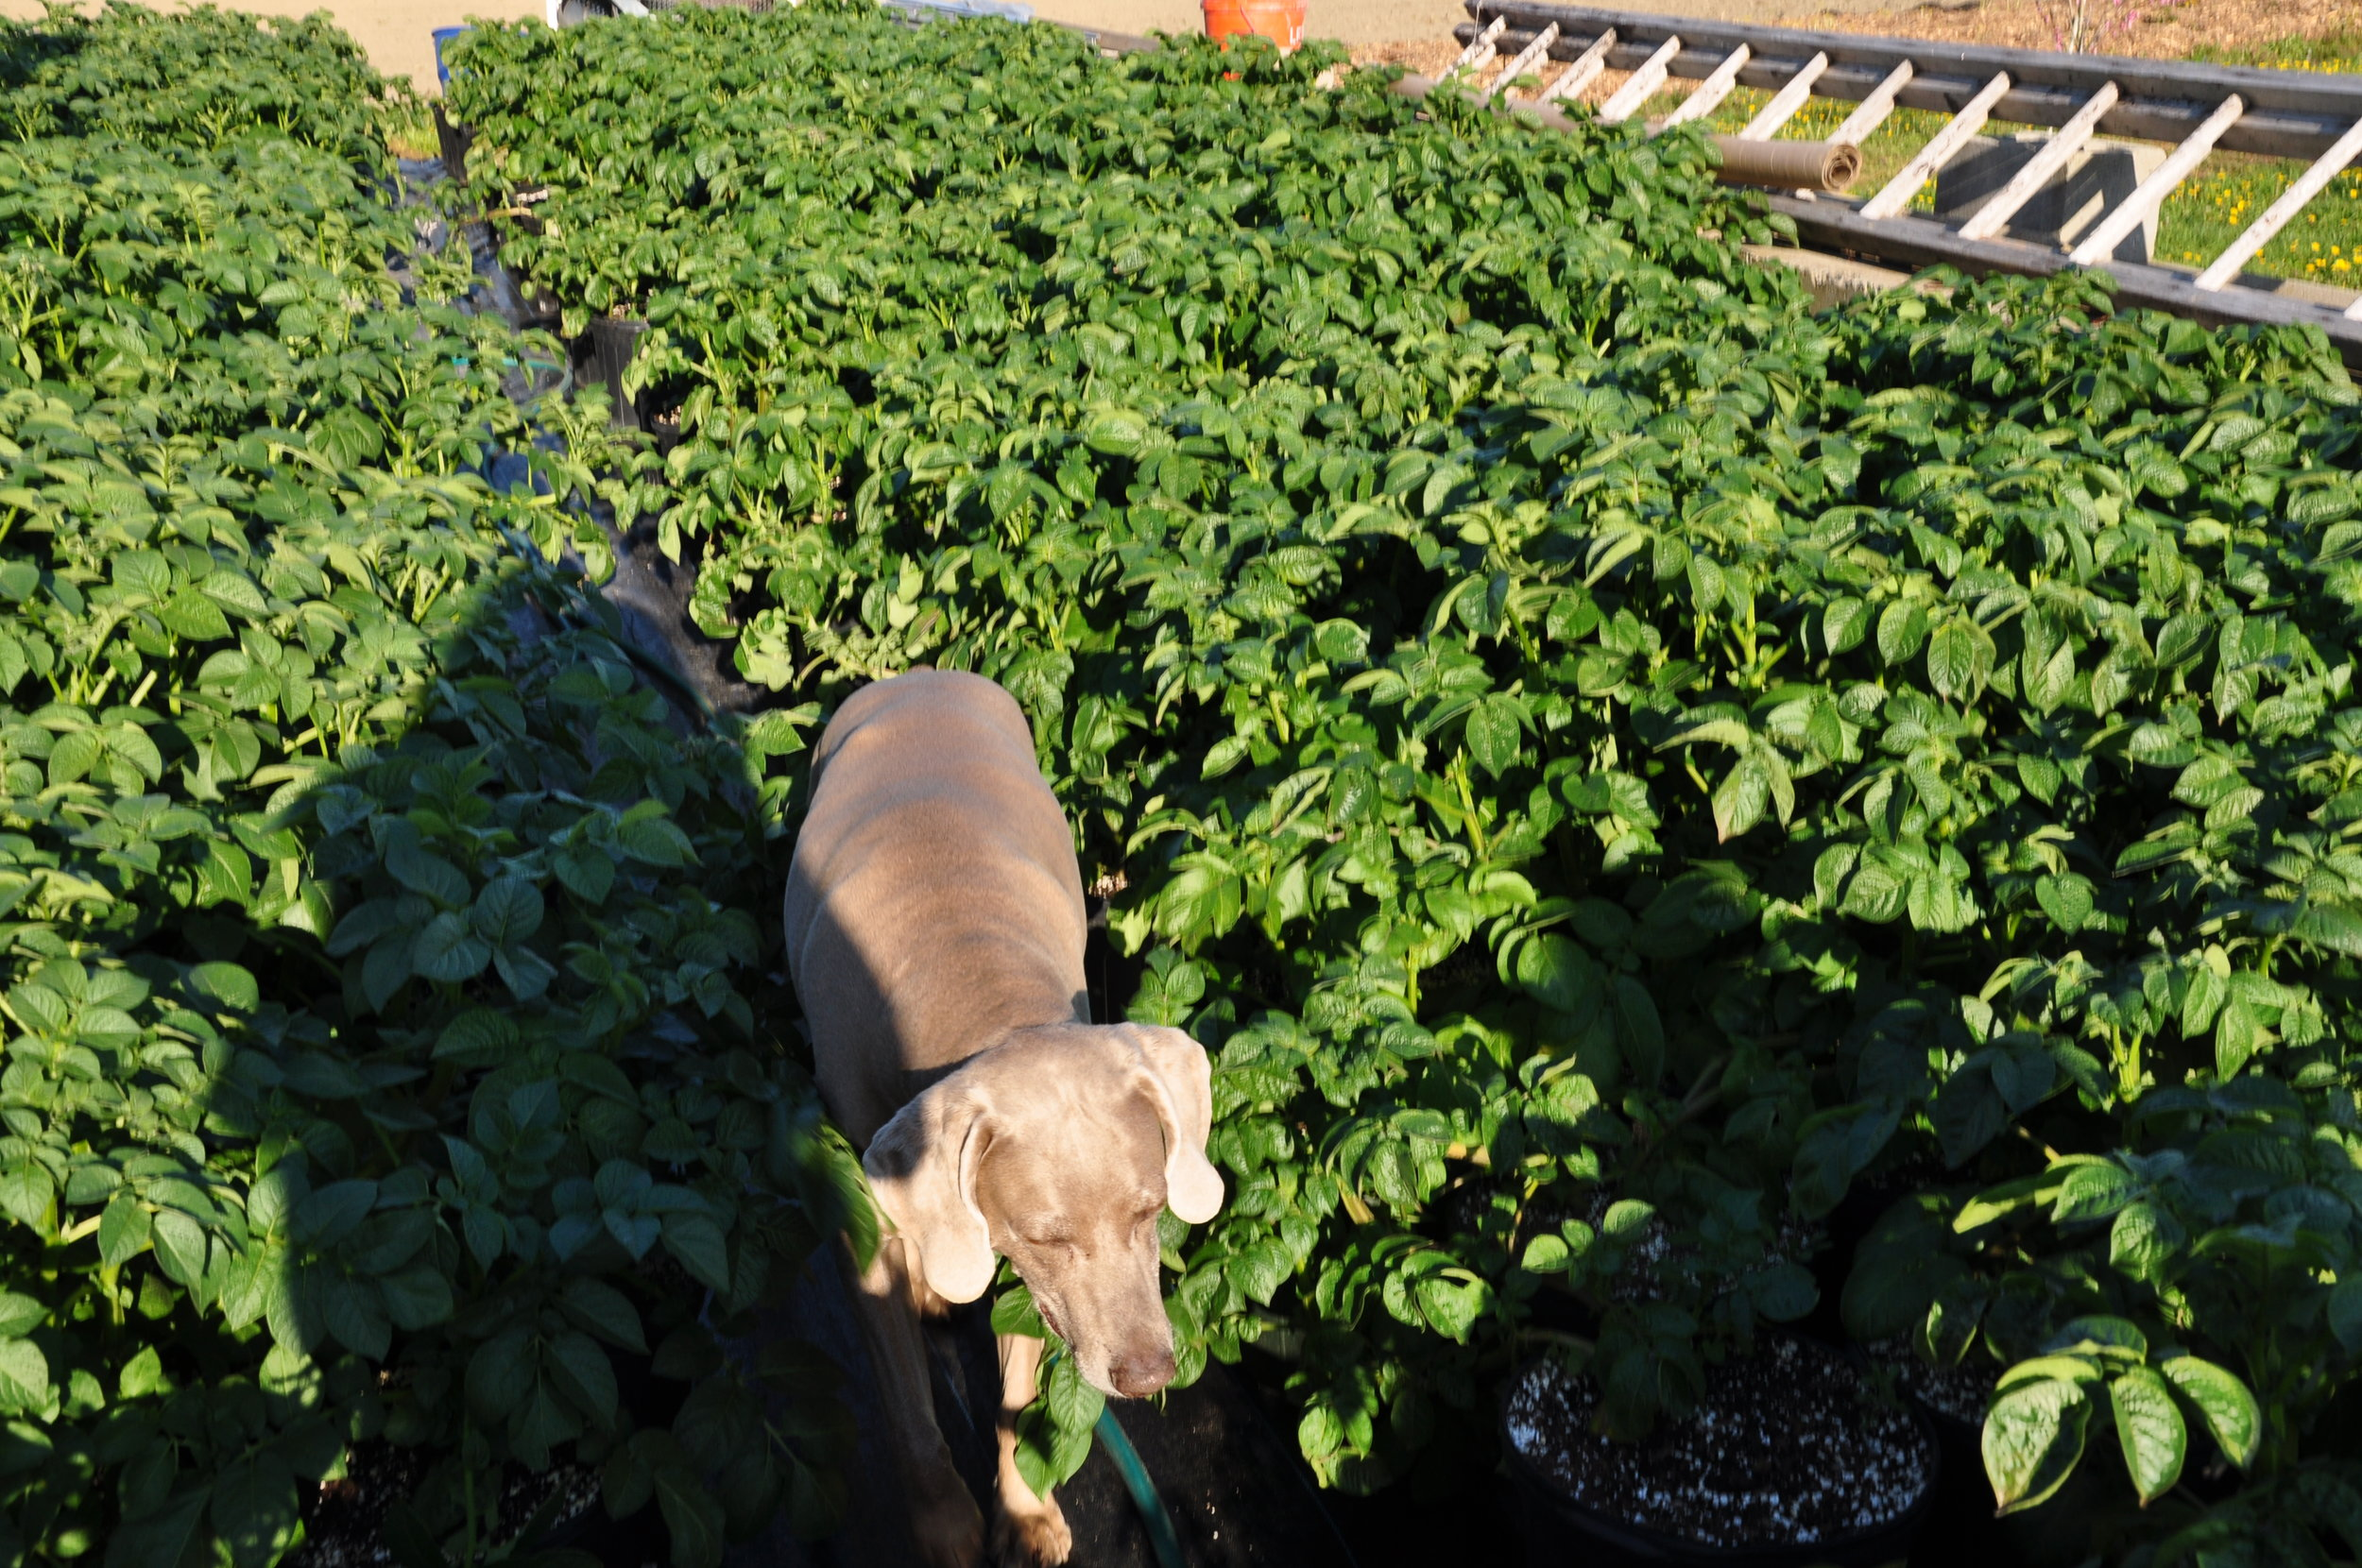 Young Family Farm dog Bella, a welcoming Weimaraner, strolls near some pepper plantings.